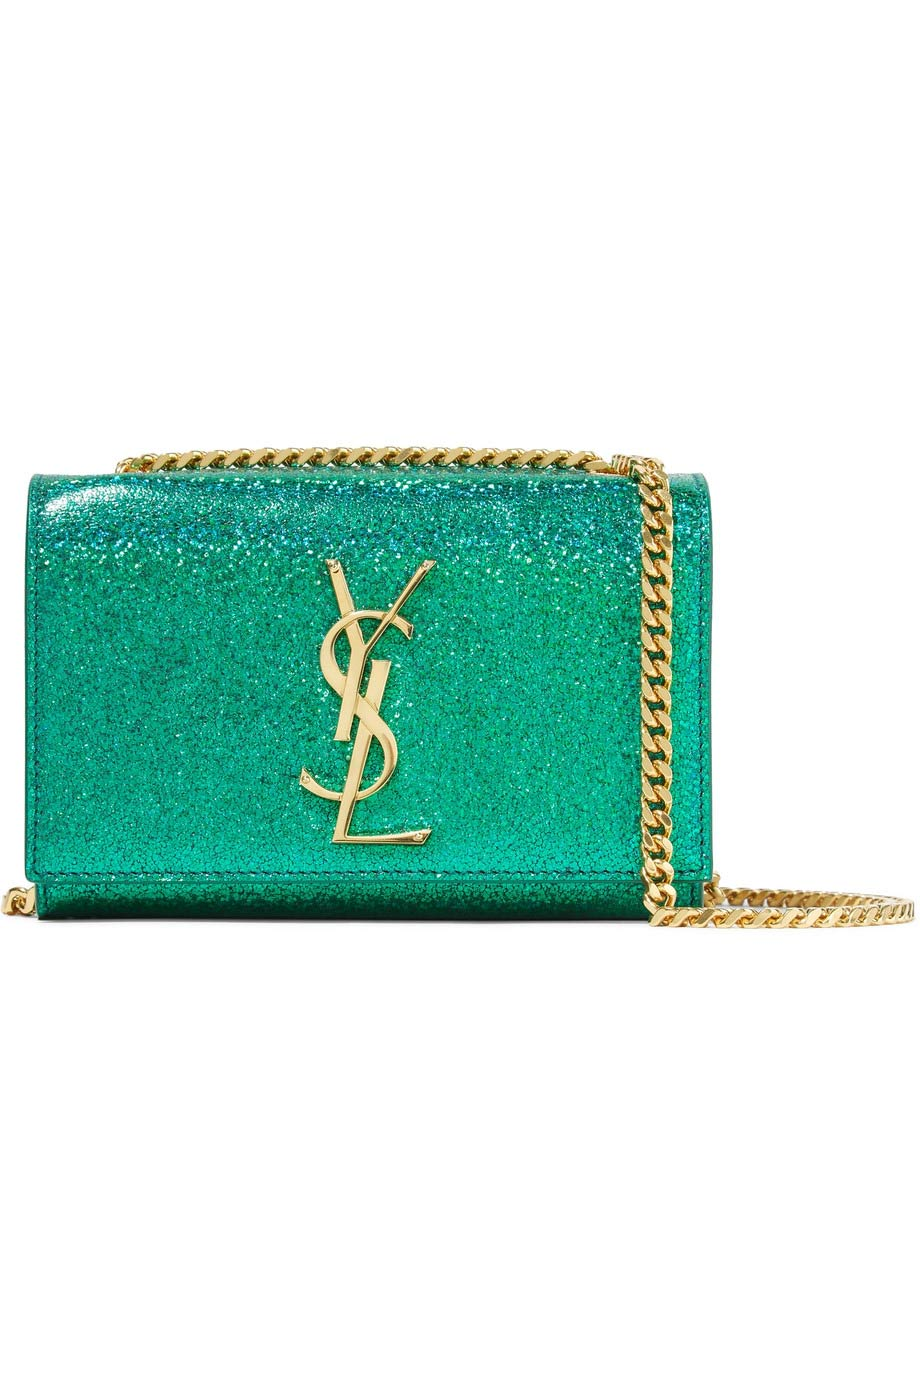 Monogramme Kate small glittered leather shoulder bag, Saint Laurent